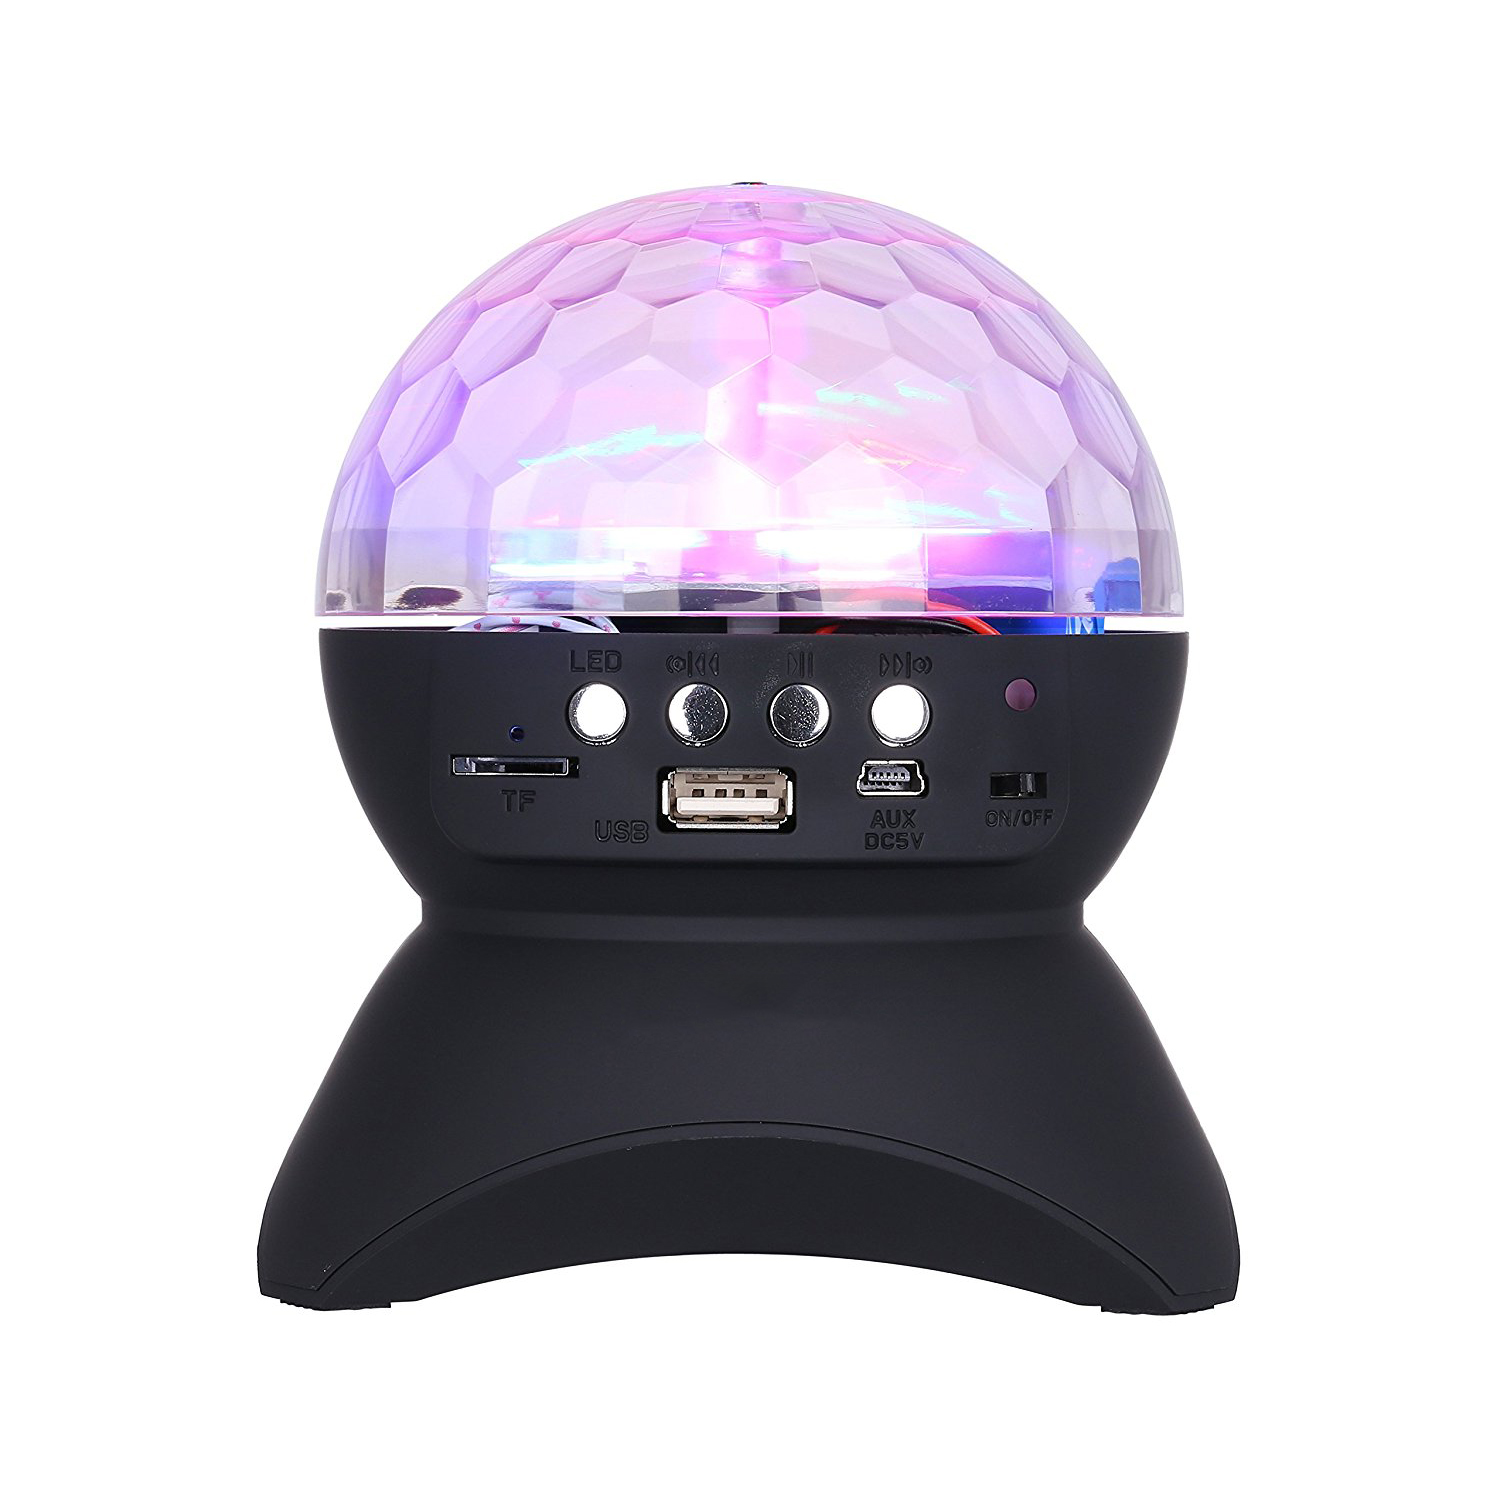 Led Stage Light with Wireless Bluetooth Speaker Support TF Card , Music , FM radio with USB for Parties , DJ etc. - Black